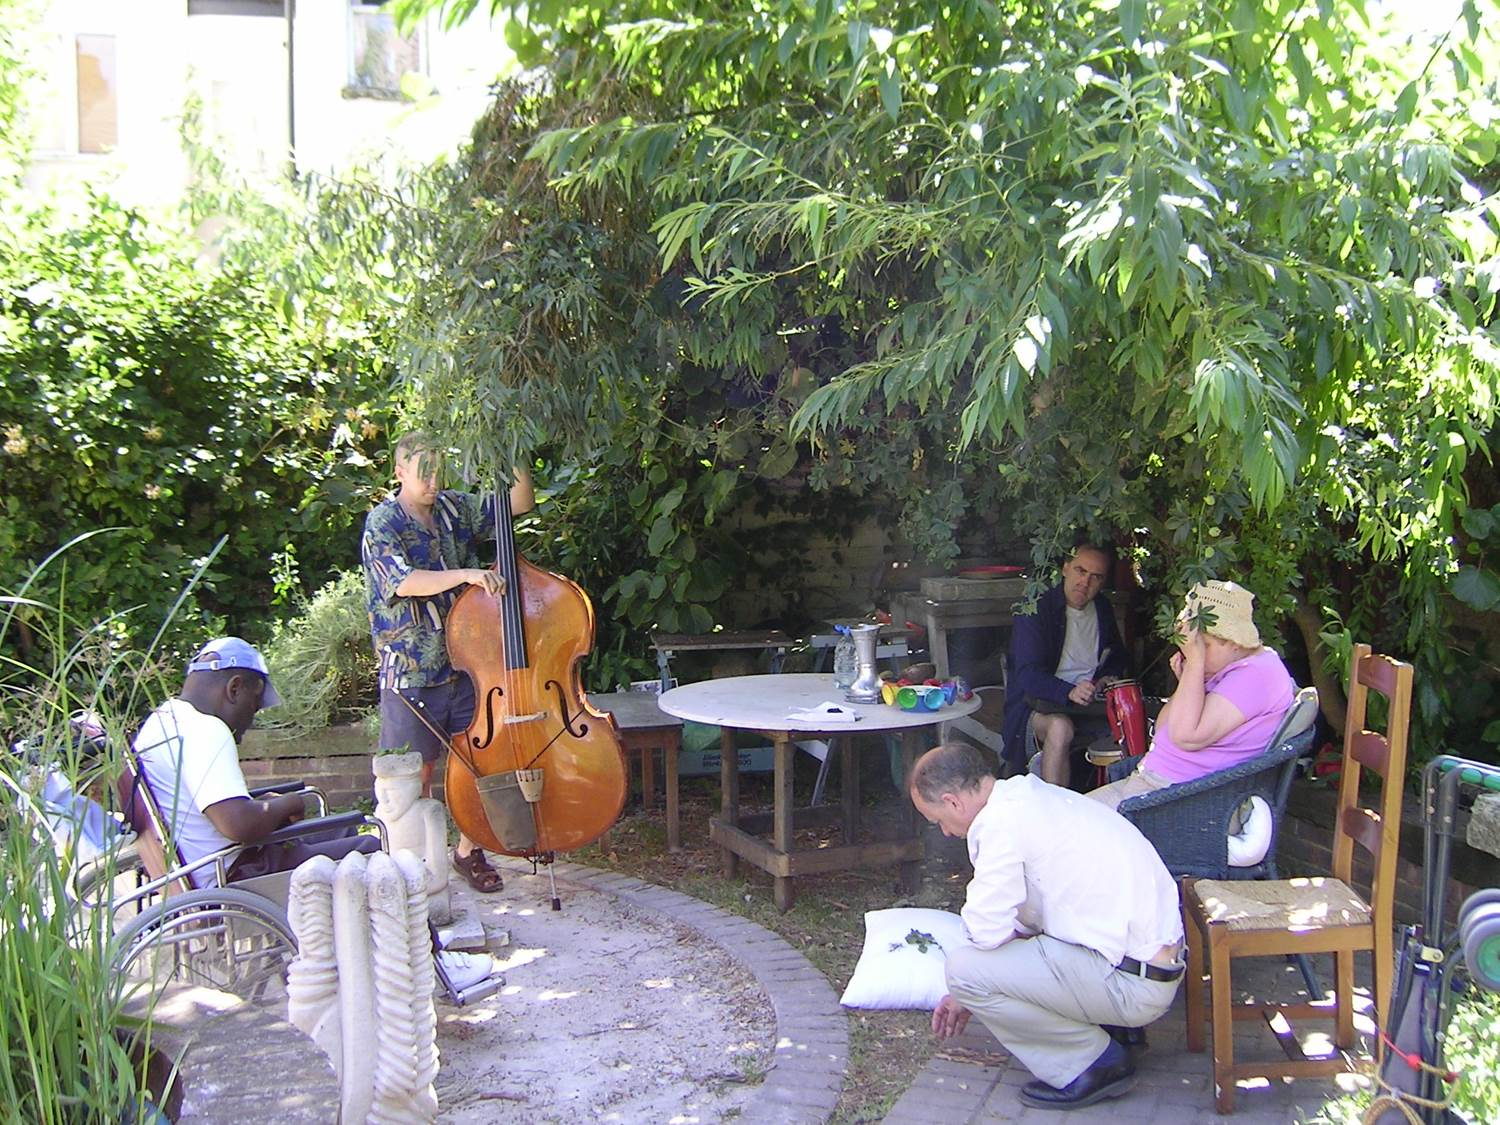 bass player and people in a garden together